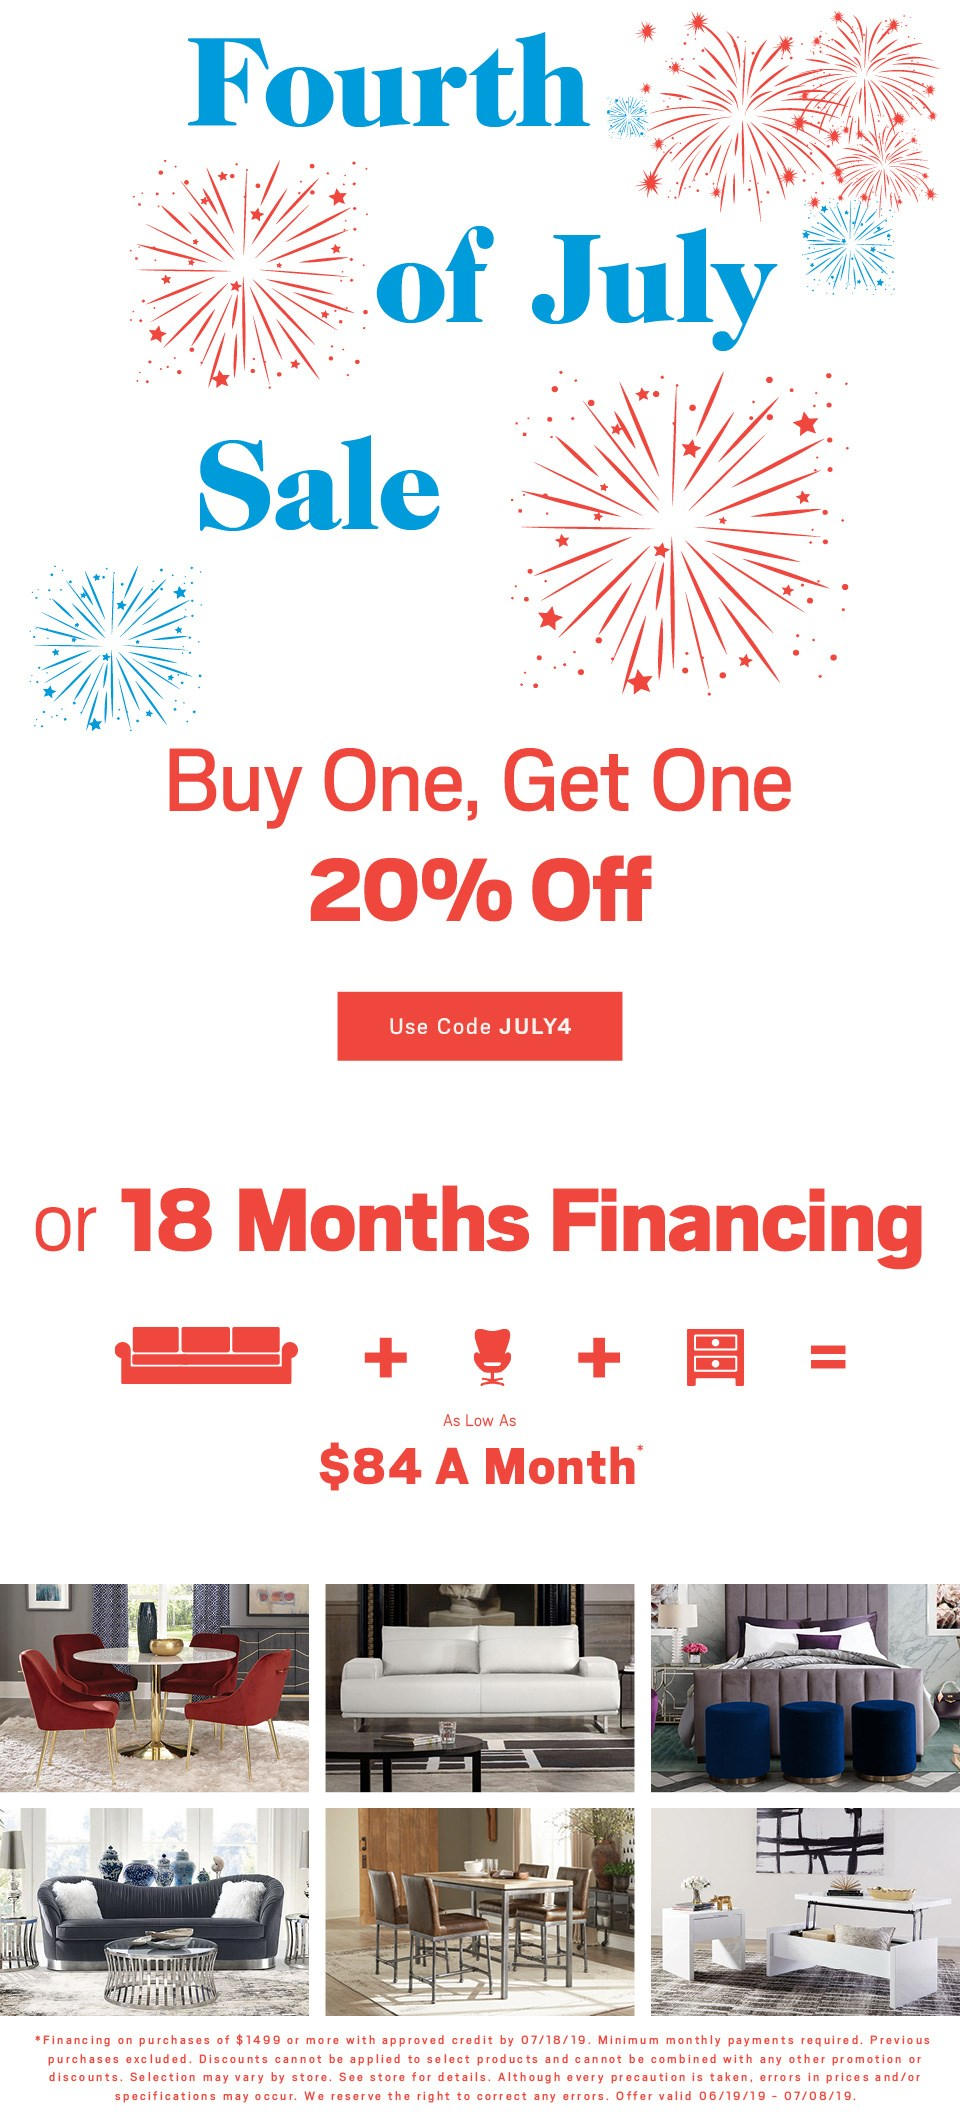 One Get 20 Off Or Ask About 18 Months Financing Use Code